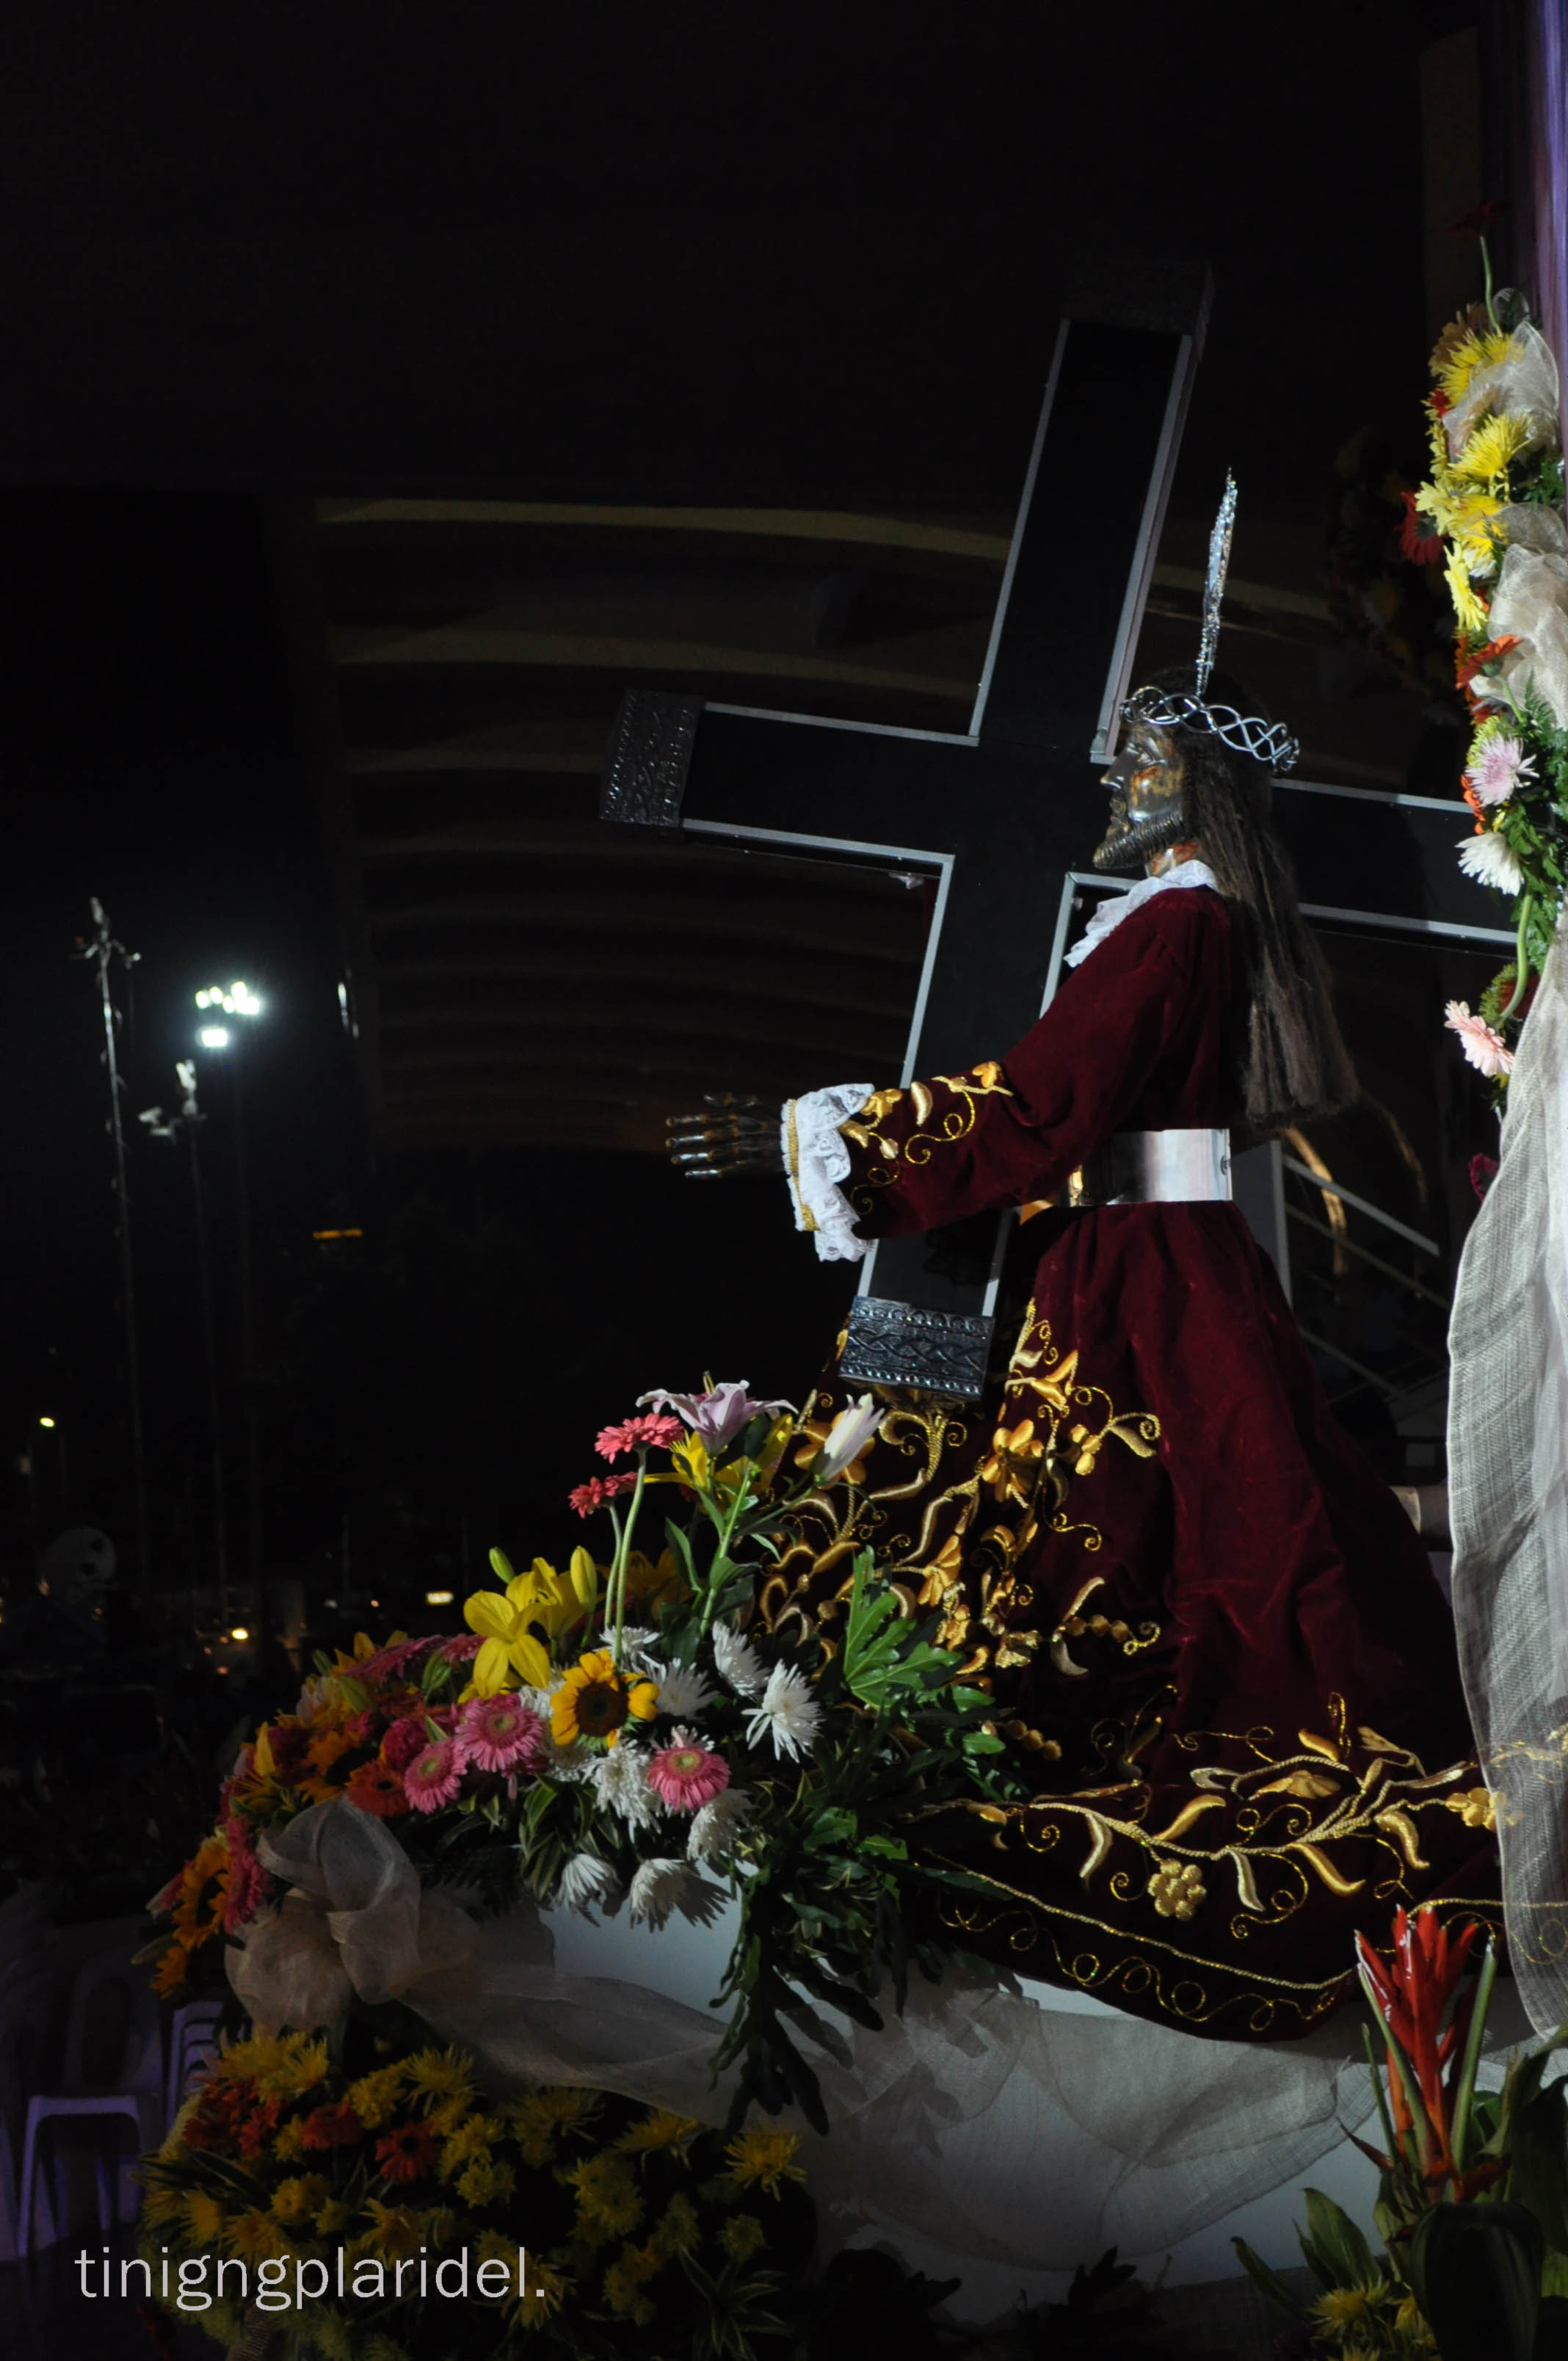 Moving pictures: the Nazareno crowd